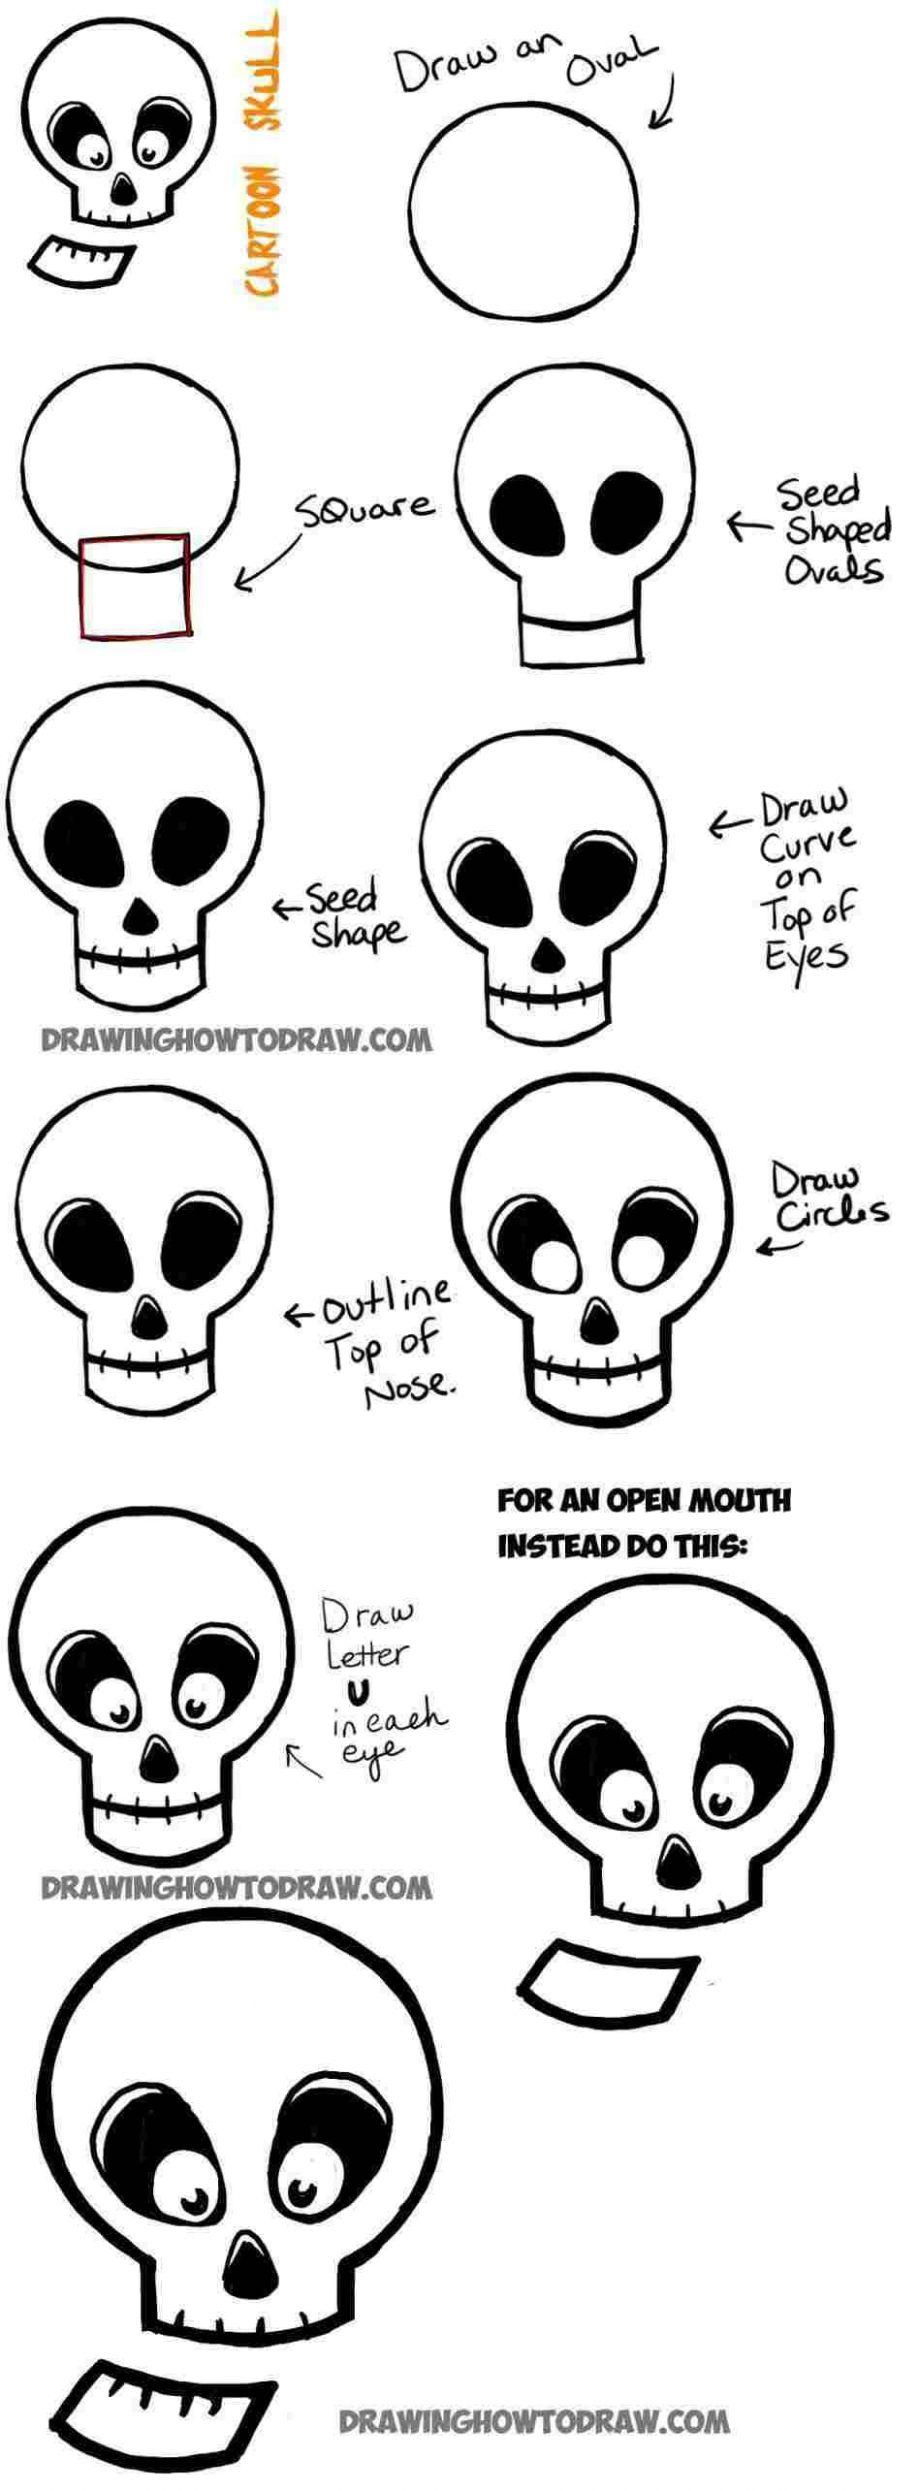 9 Easy Halloween Drawings Step By Step For Kids – EntertainmentMesh - halloween ideas to draw